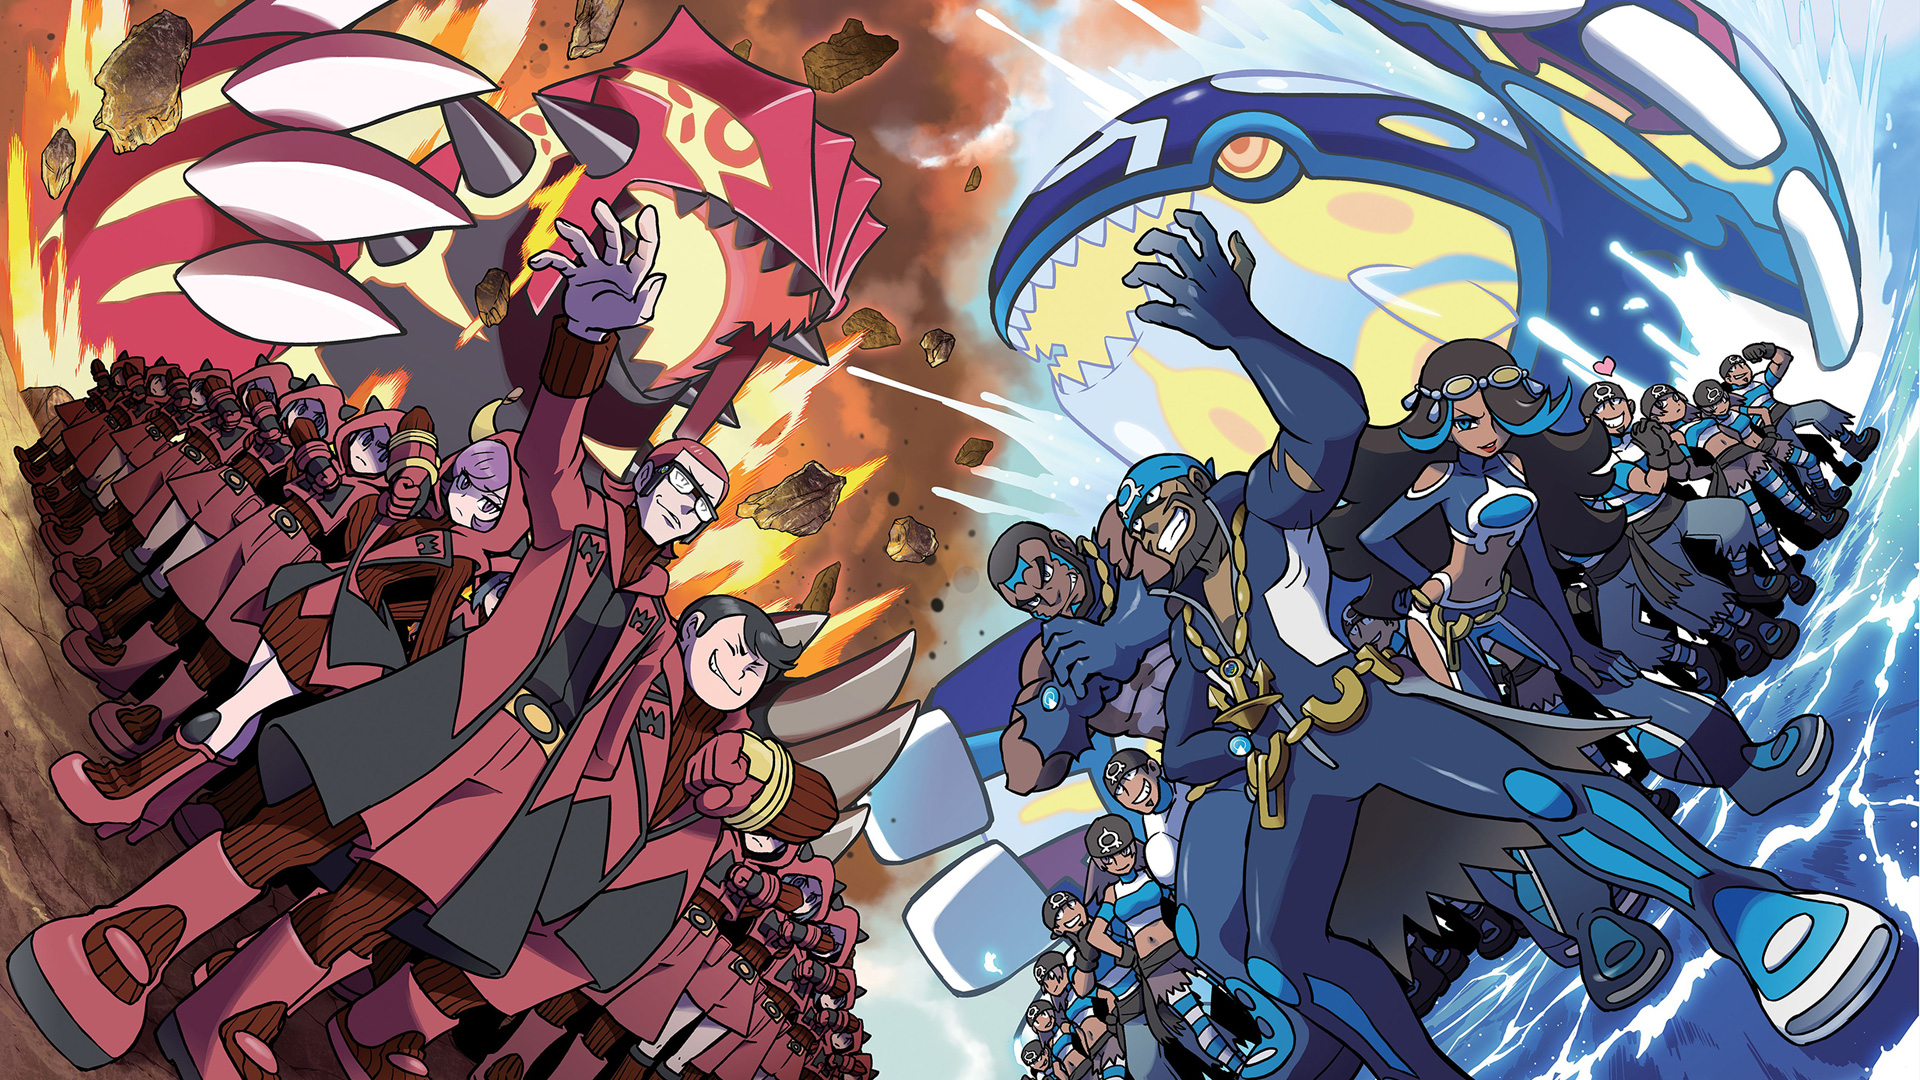 Pokemon Omega Ruby Best HD Wallpaper 4637 Wallpaper computer best 1920x1080